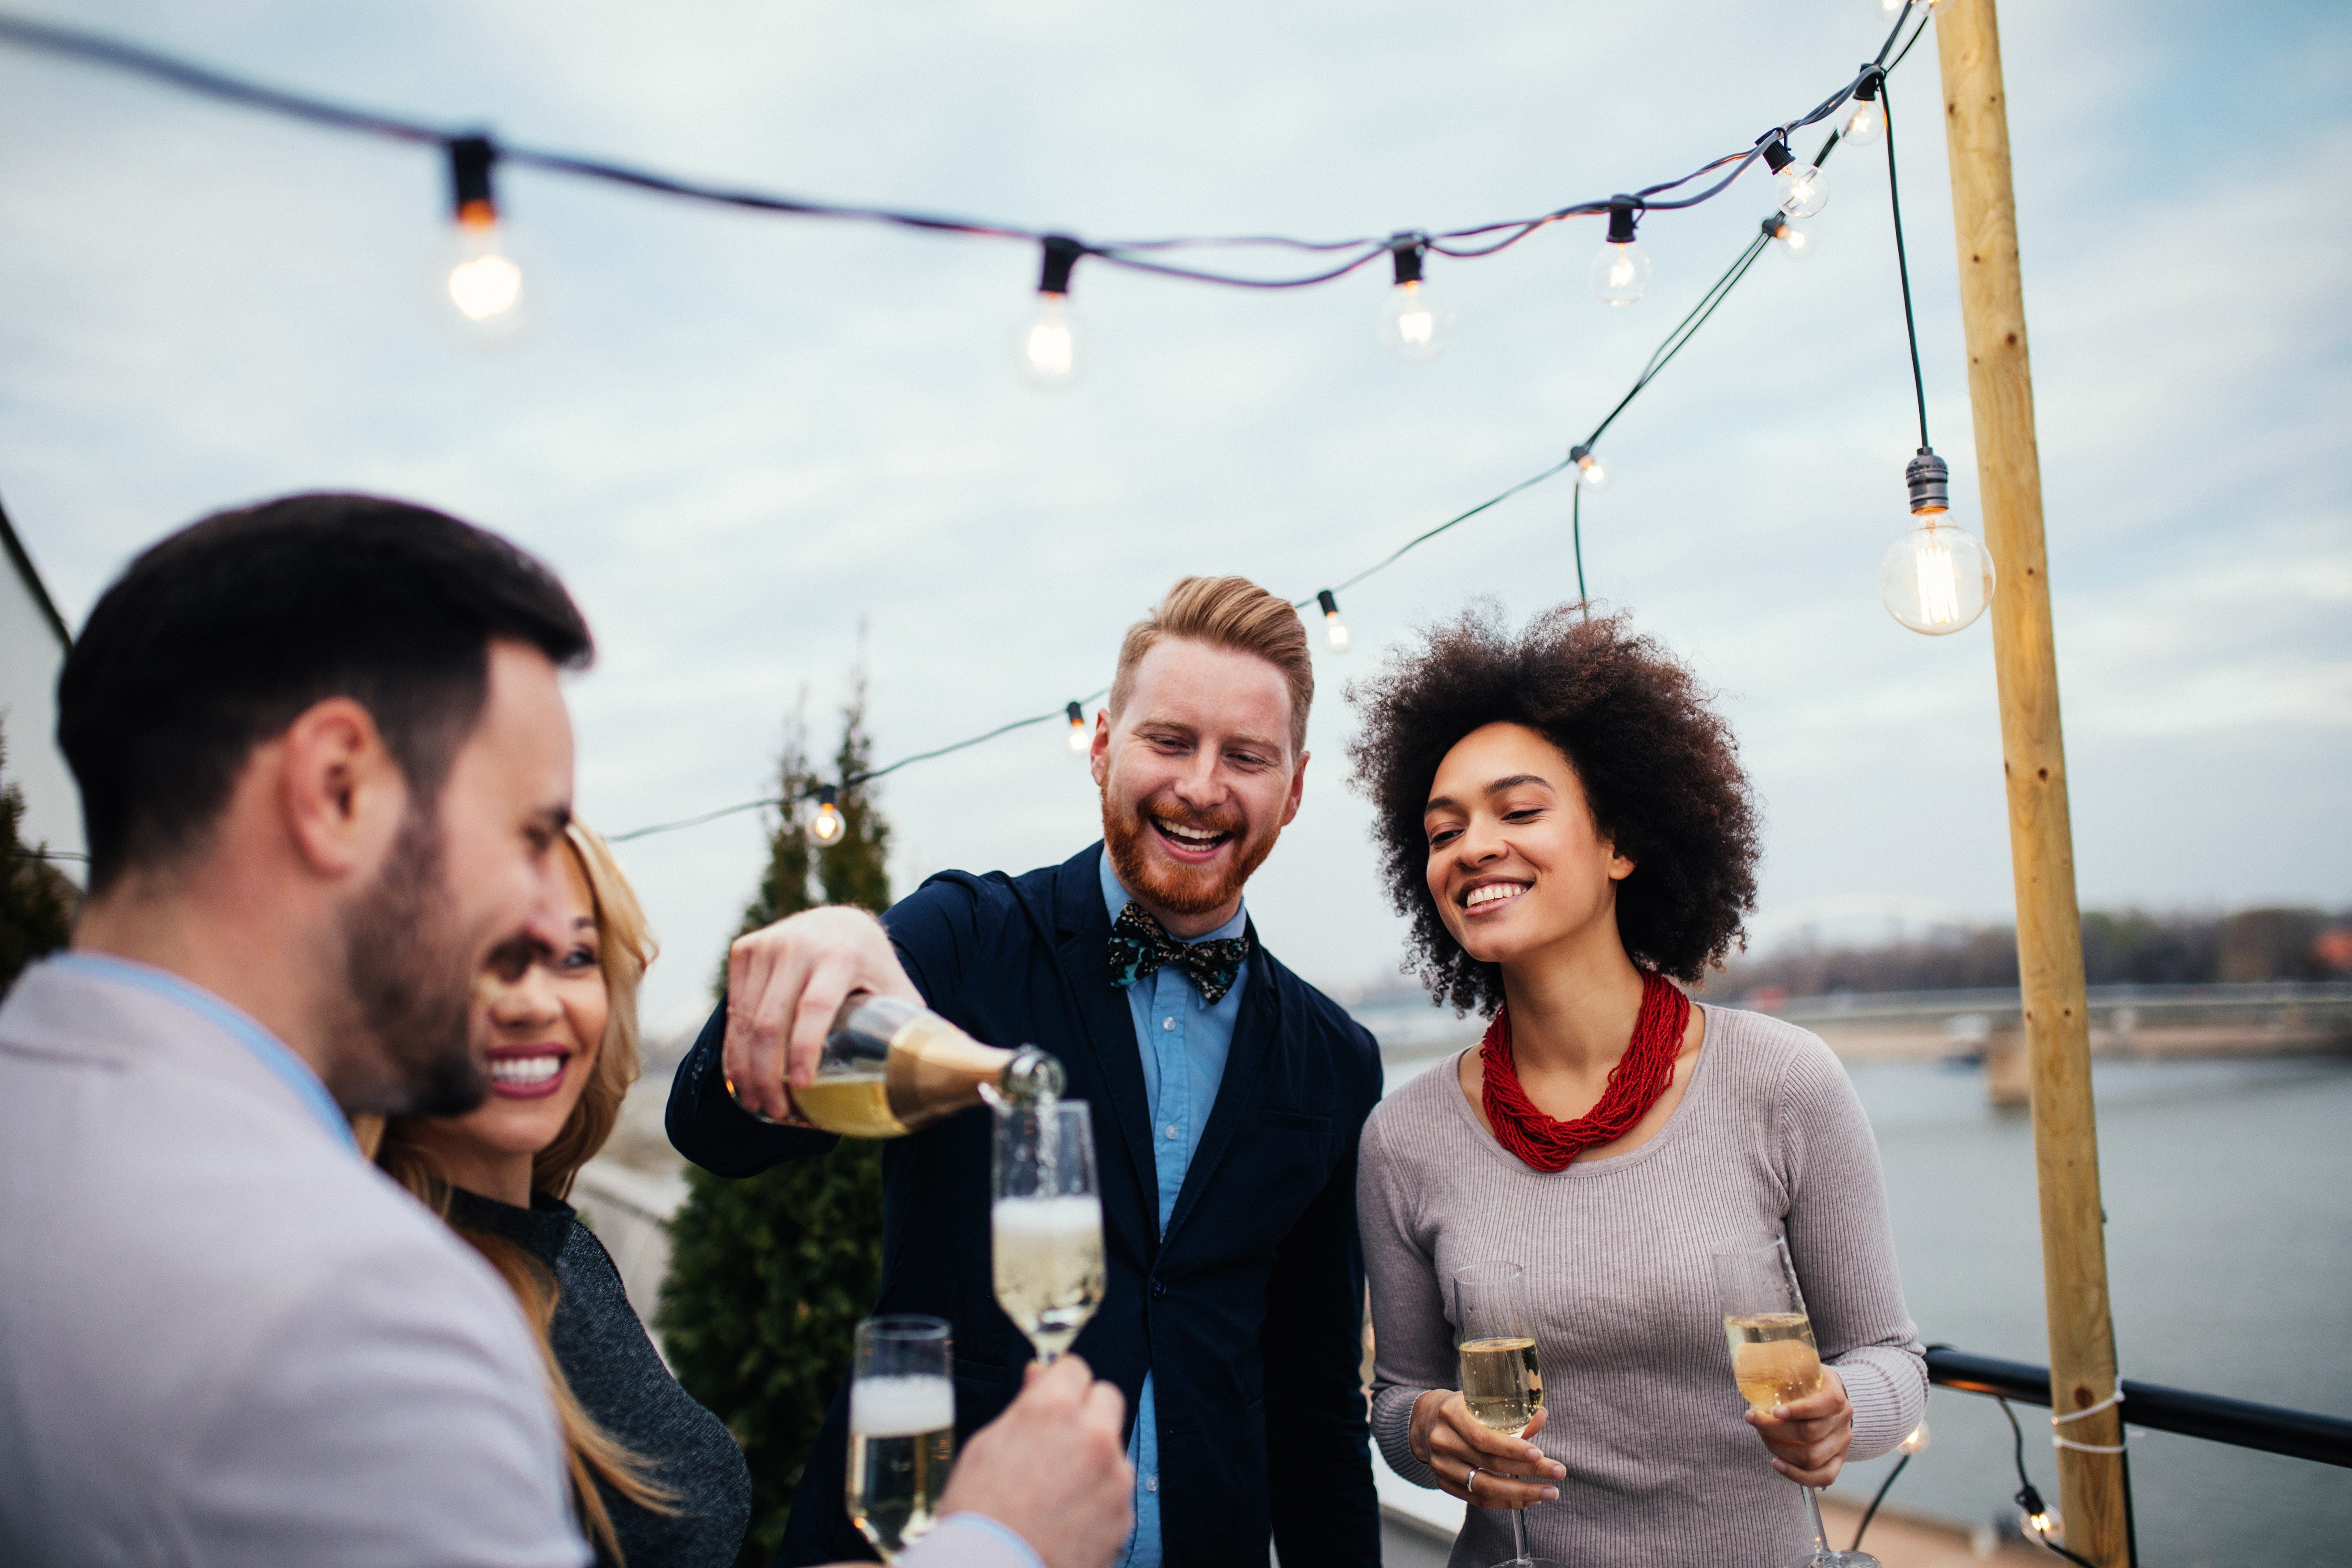 Friends celebrating on rooftop and drinking champagne